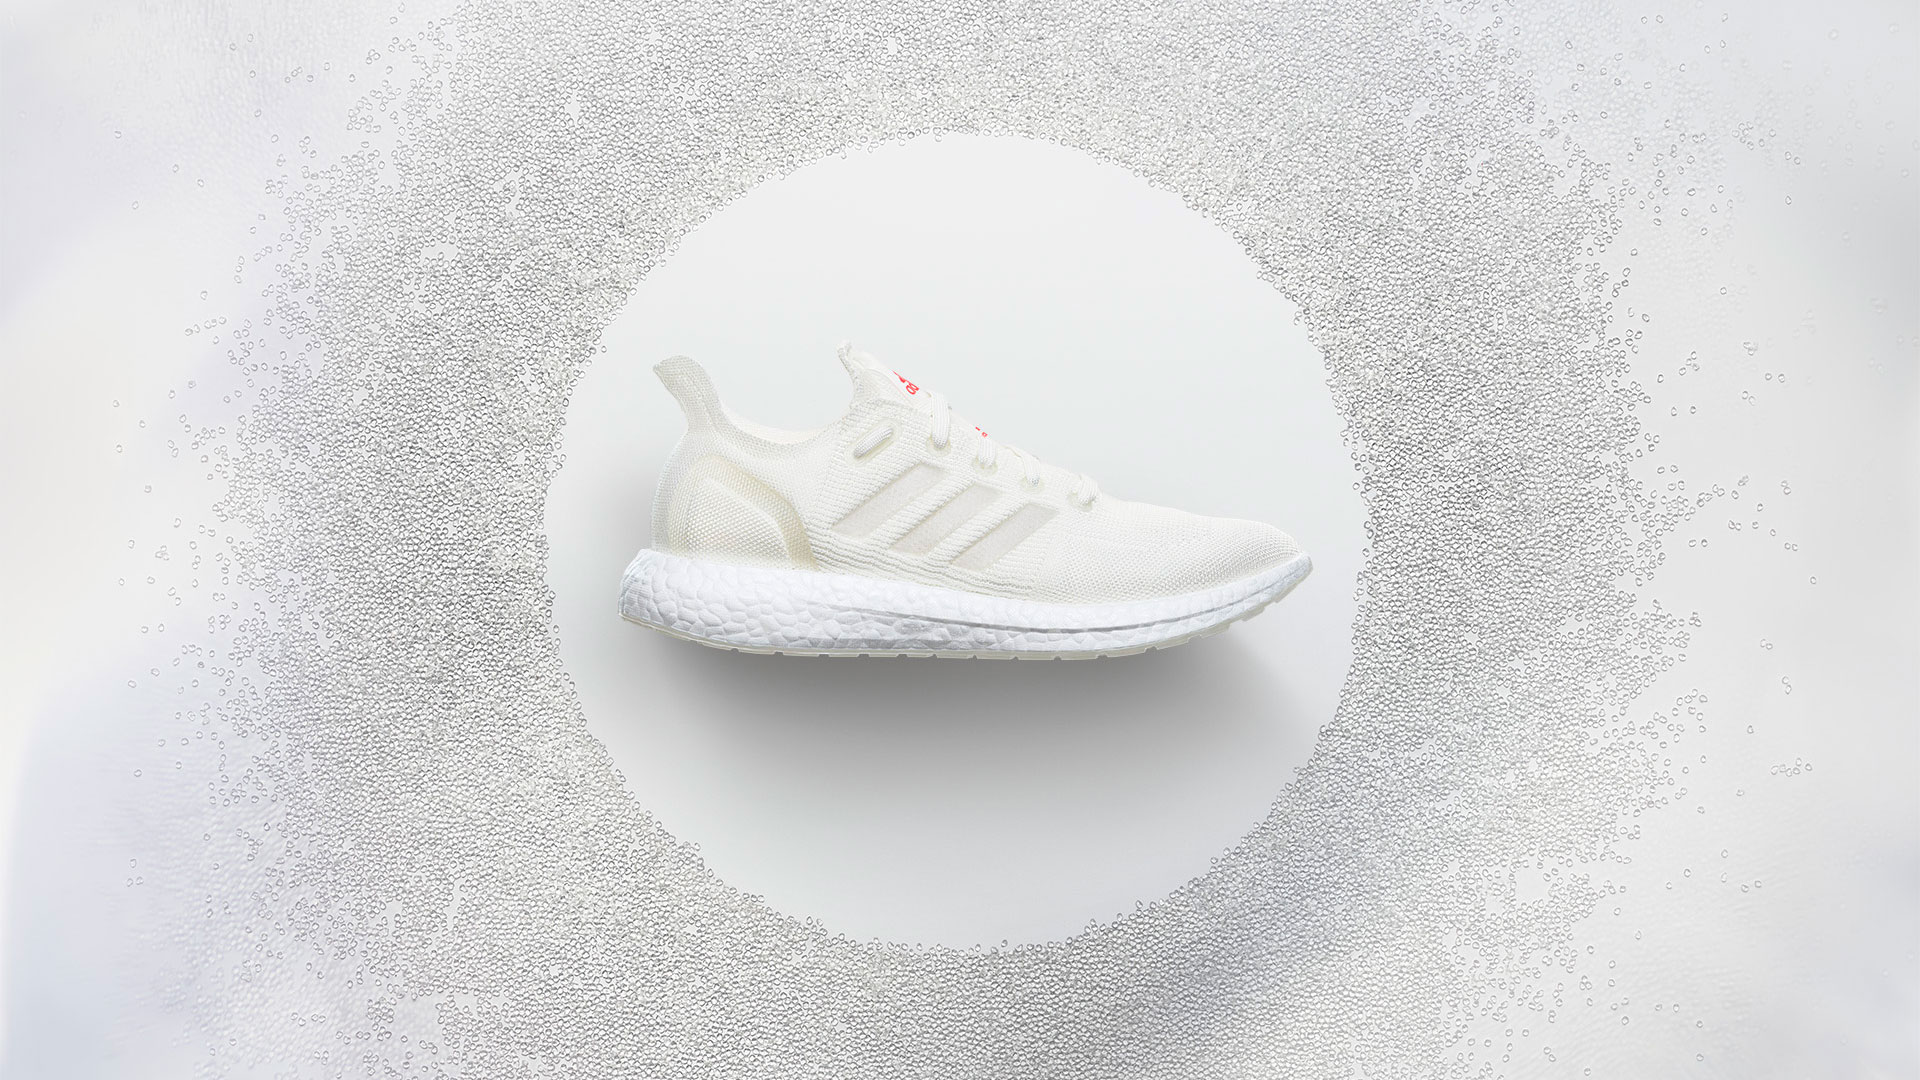 buy online c5598 55988 After the shoe is returned to adidas, it is washed and grounded into  pellets. These pellets can be melted and reused into a new pair of shoes,  thus closing ...